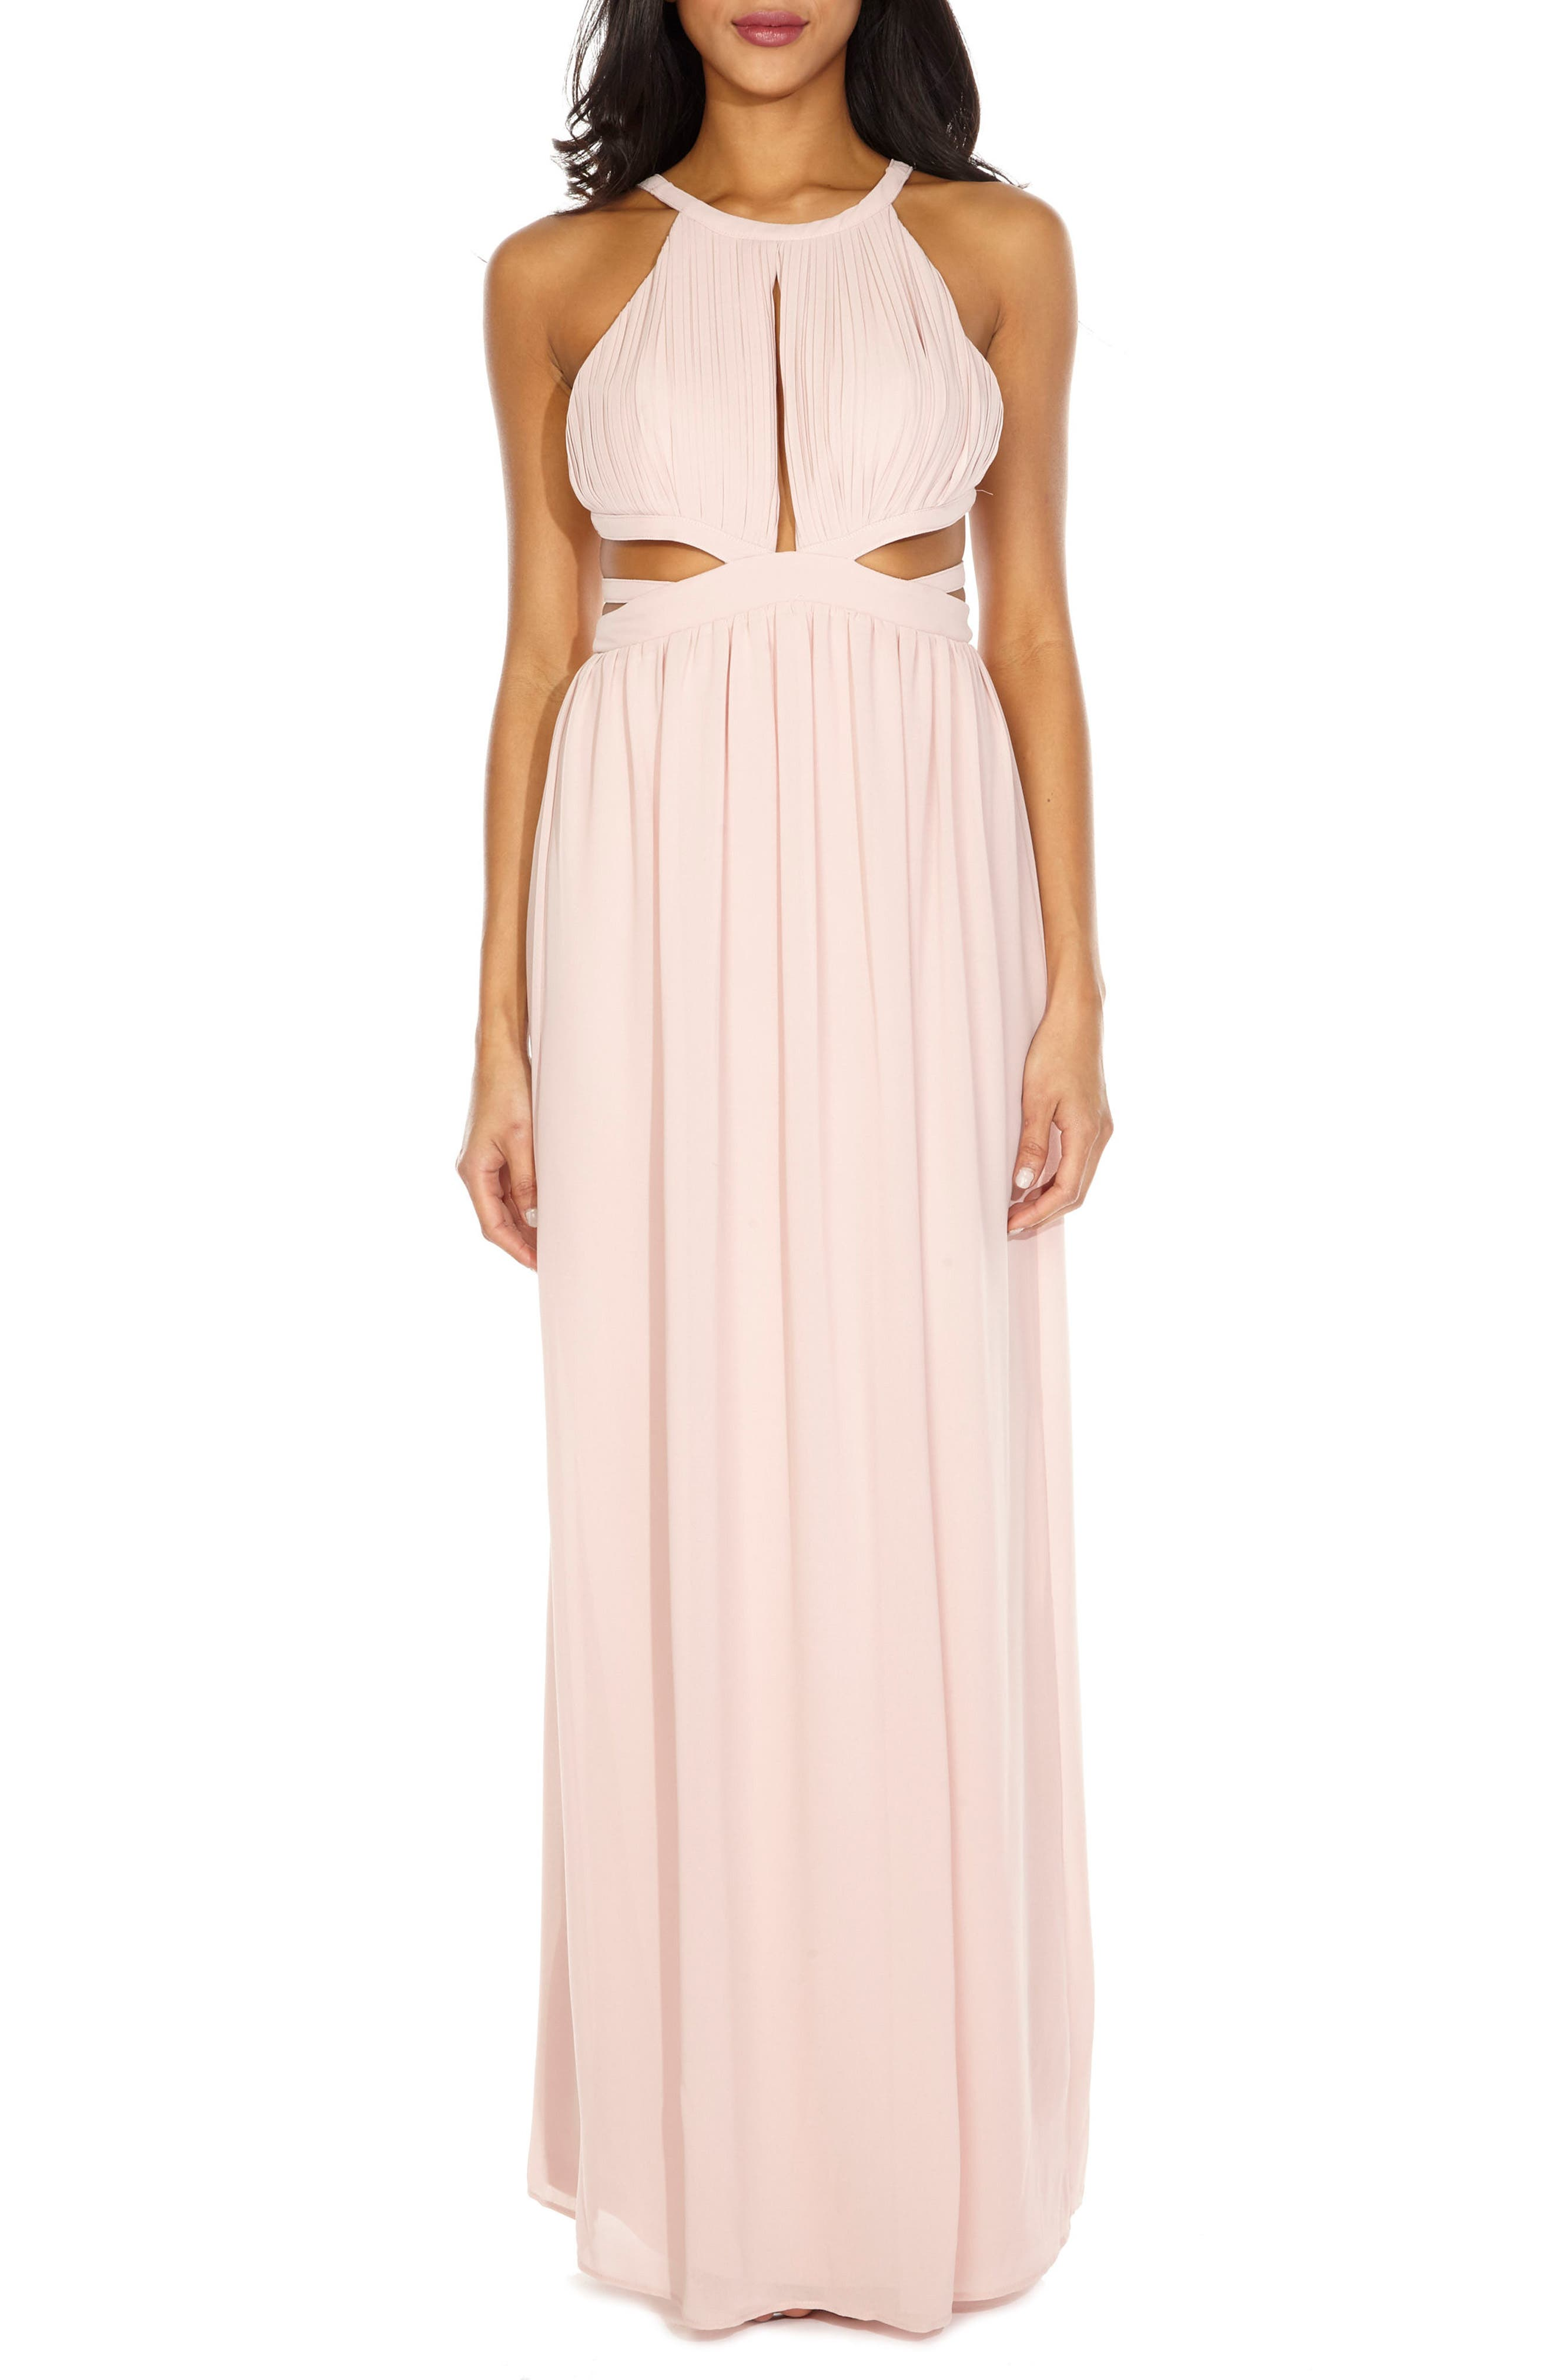 Evanthe Cutout Chiffon Gown,                             Main thumbnail 1, color,                             Pearl Pink